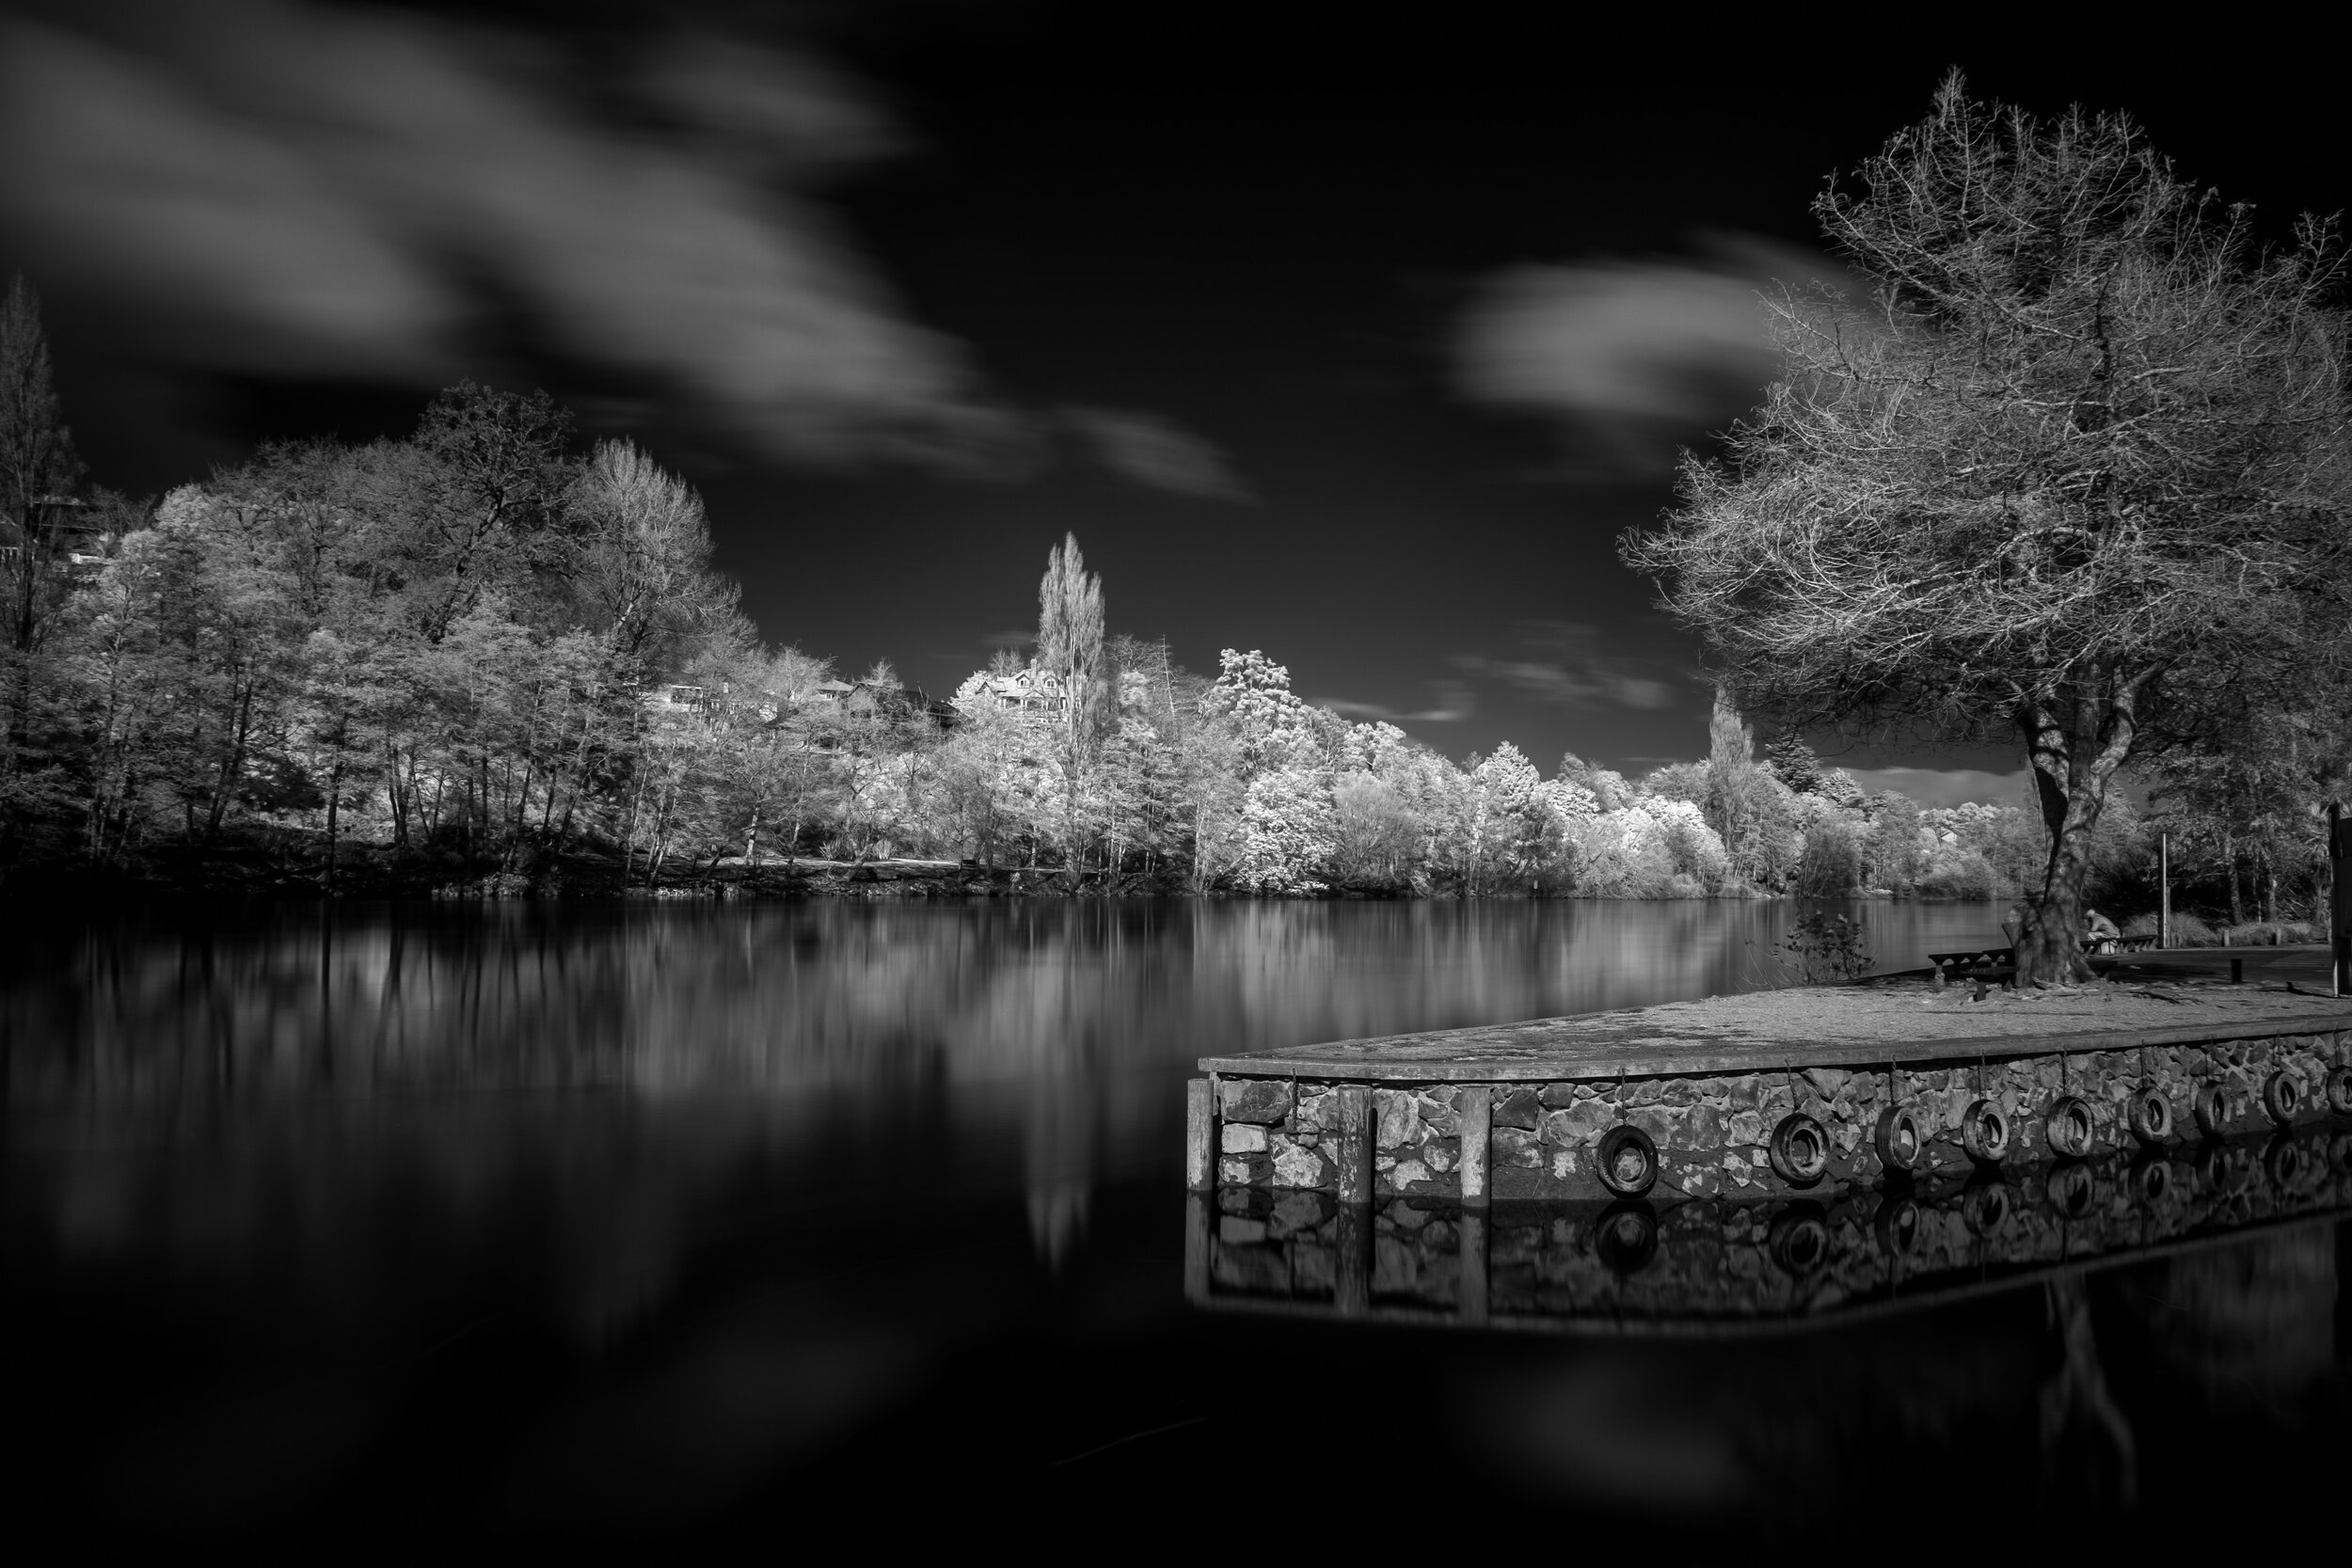 Black and White Infrared Image Lake Dock Trees